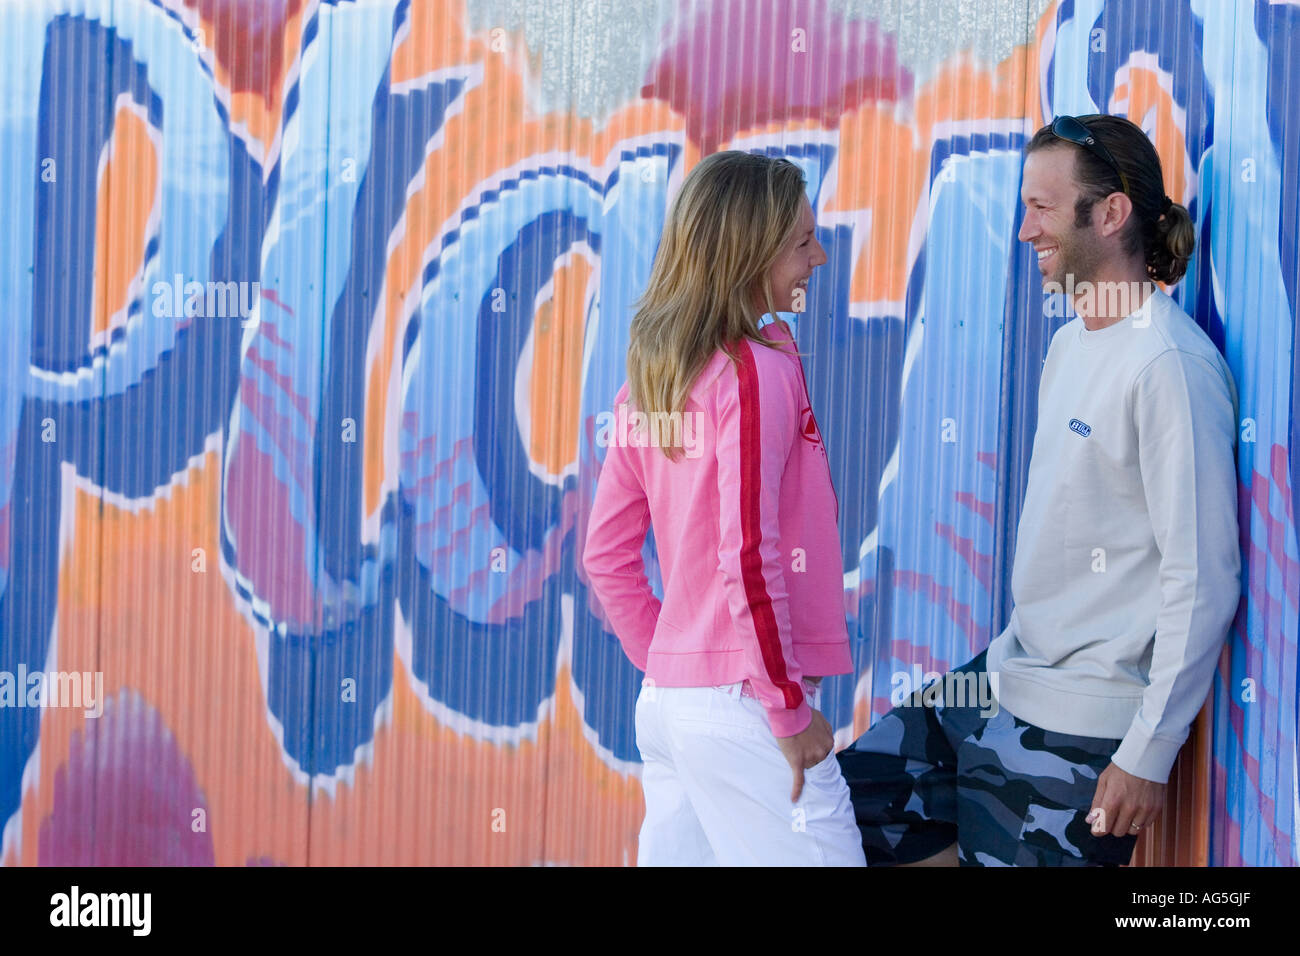 Couple talking and flirting leaning on wall Stock Photo